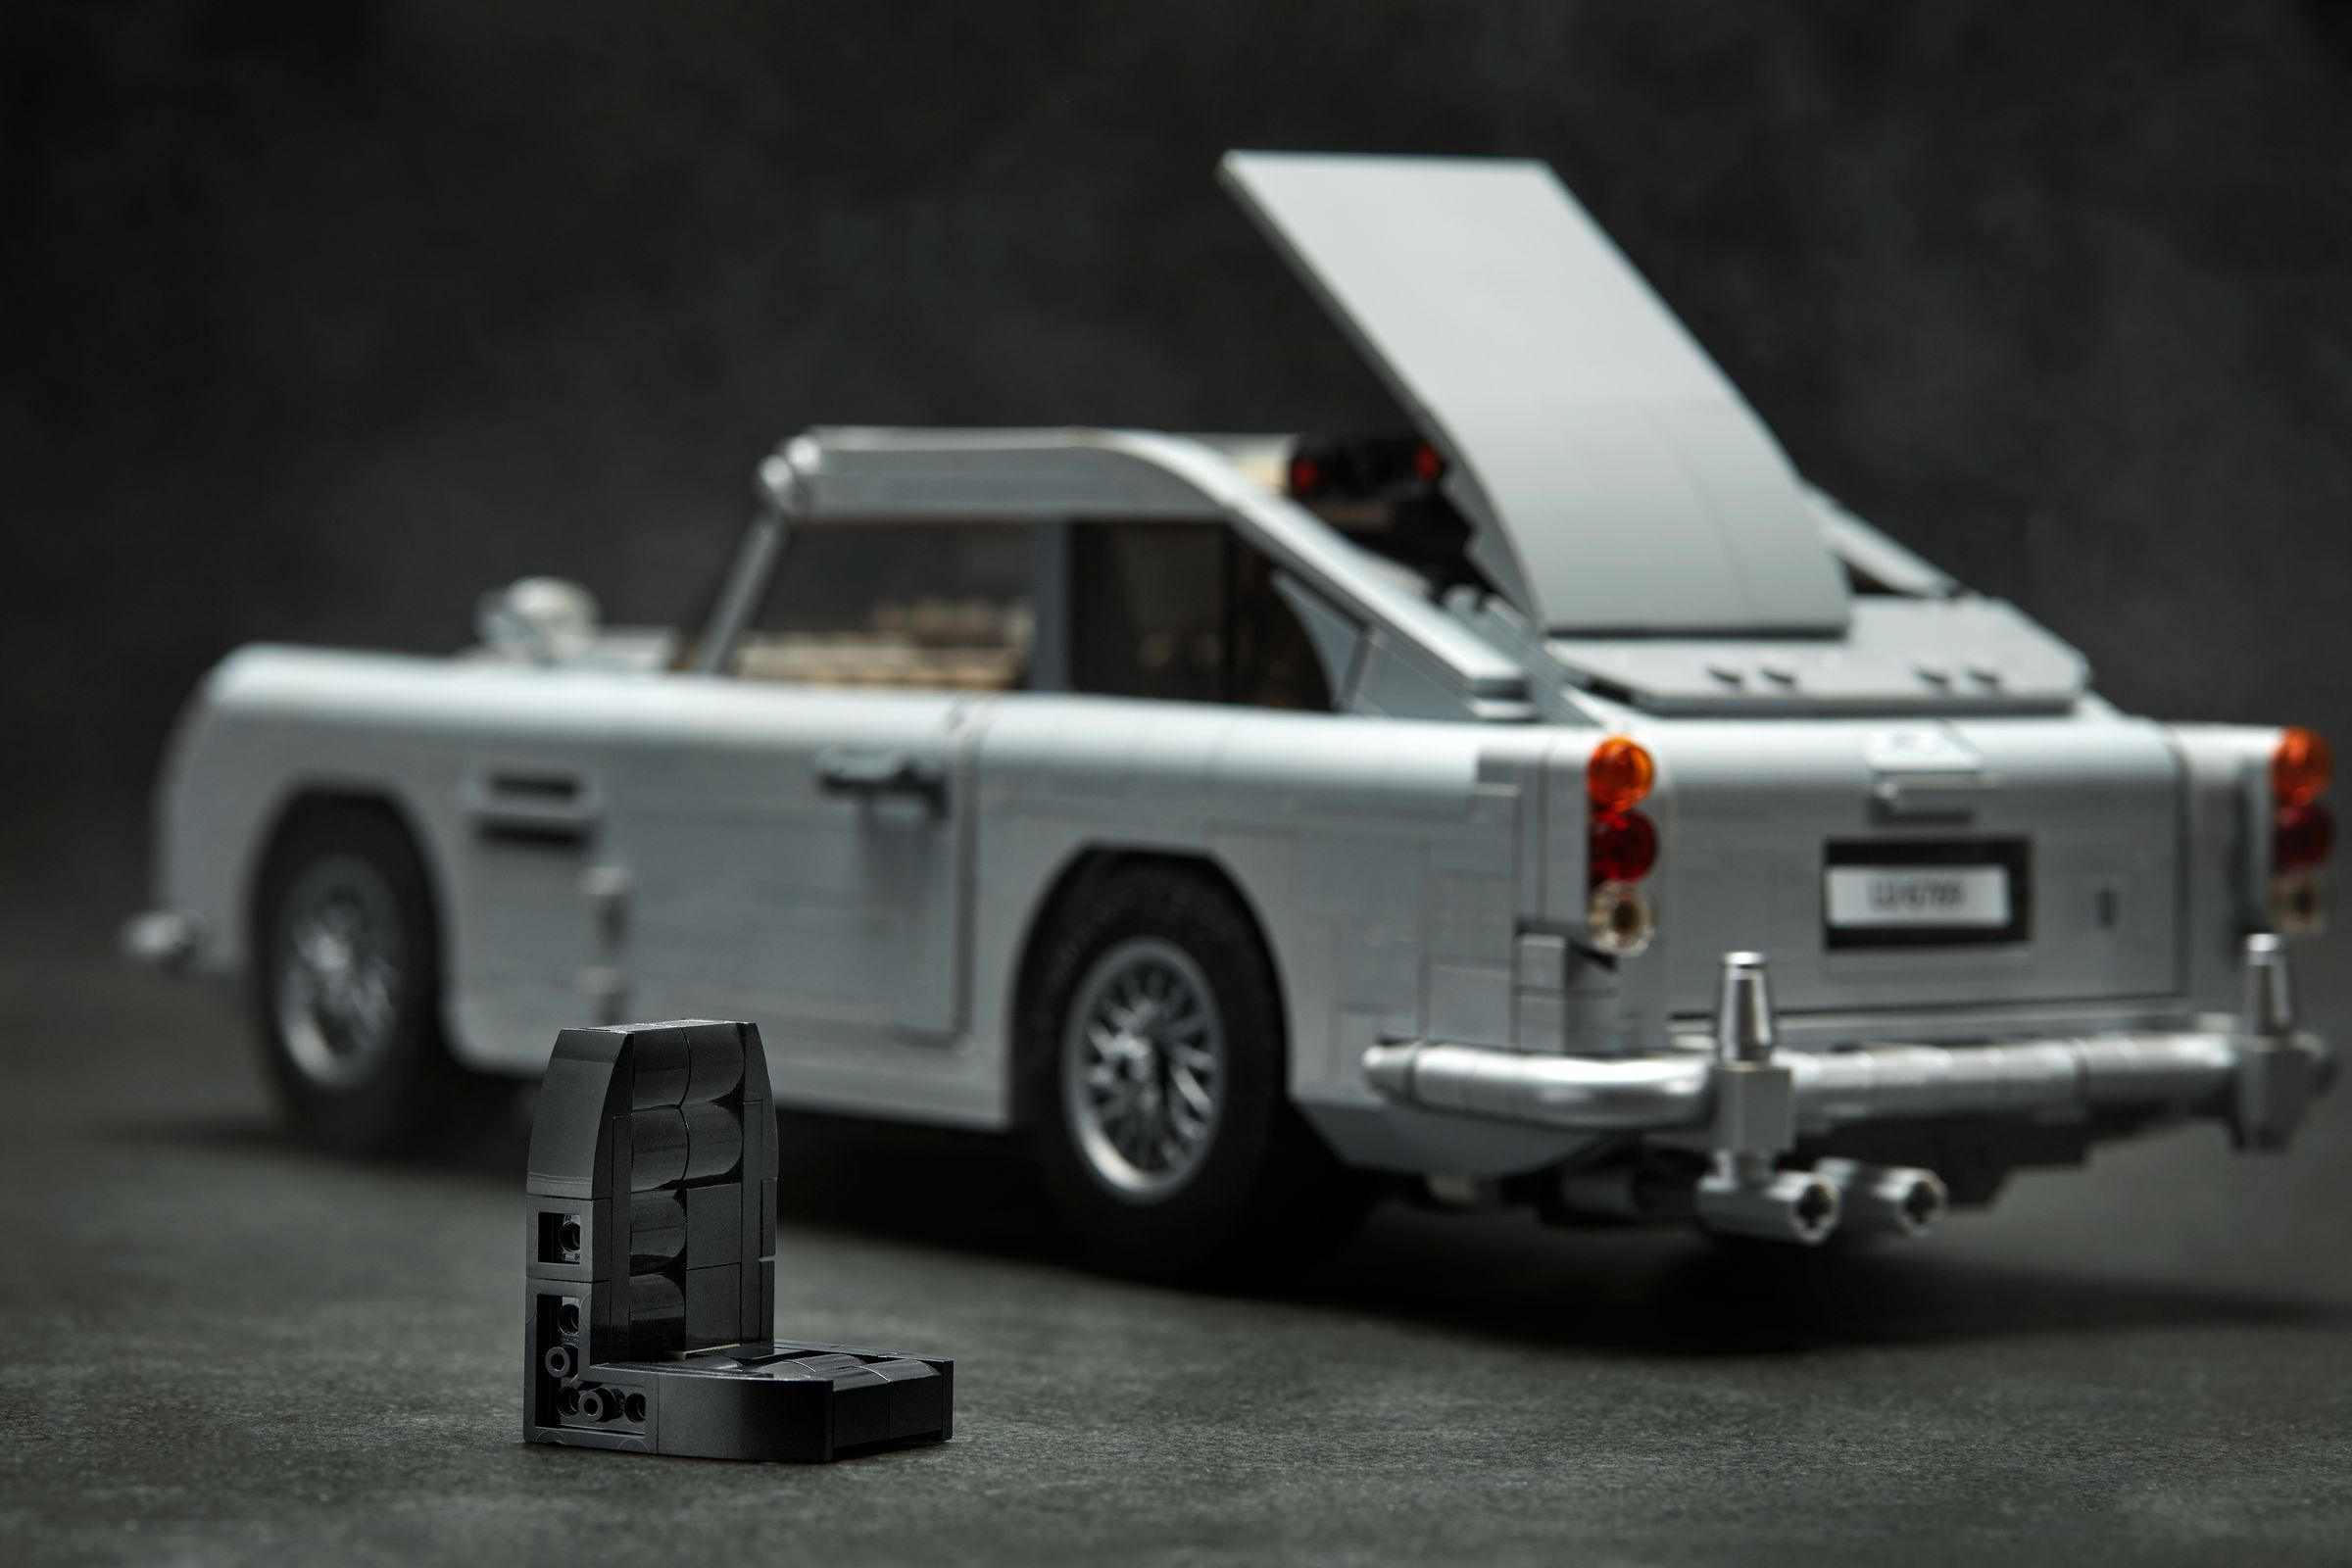 LEGO Advanced Models 10262 James Bond Aston Martin DB5 LEGO_10262_alt7.jpg